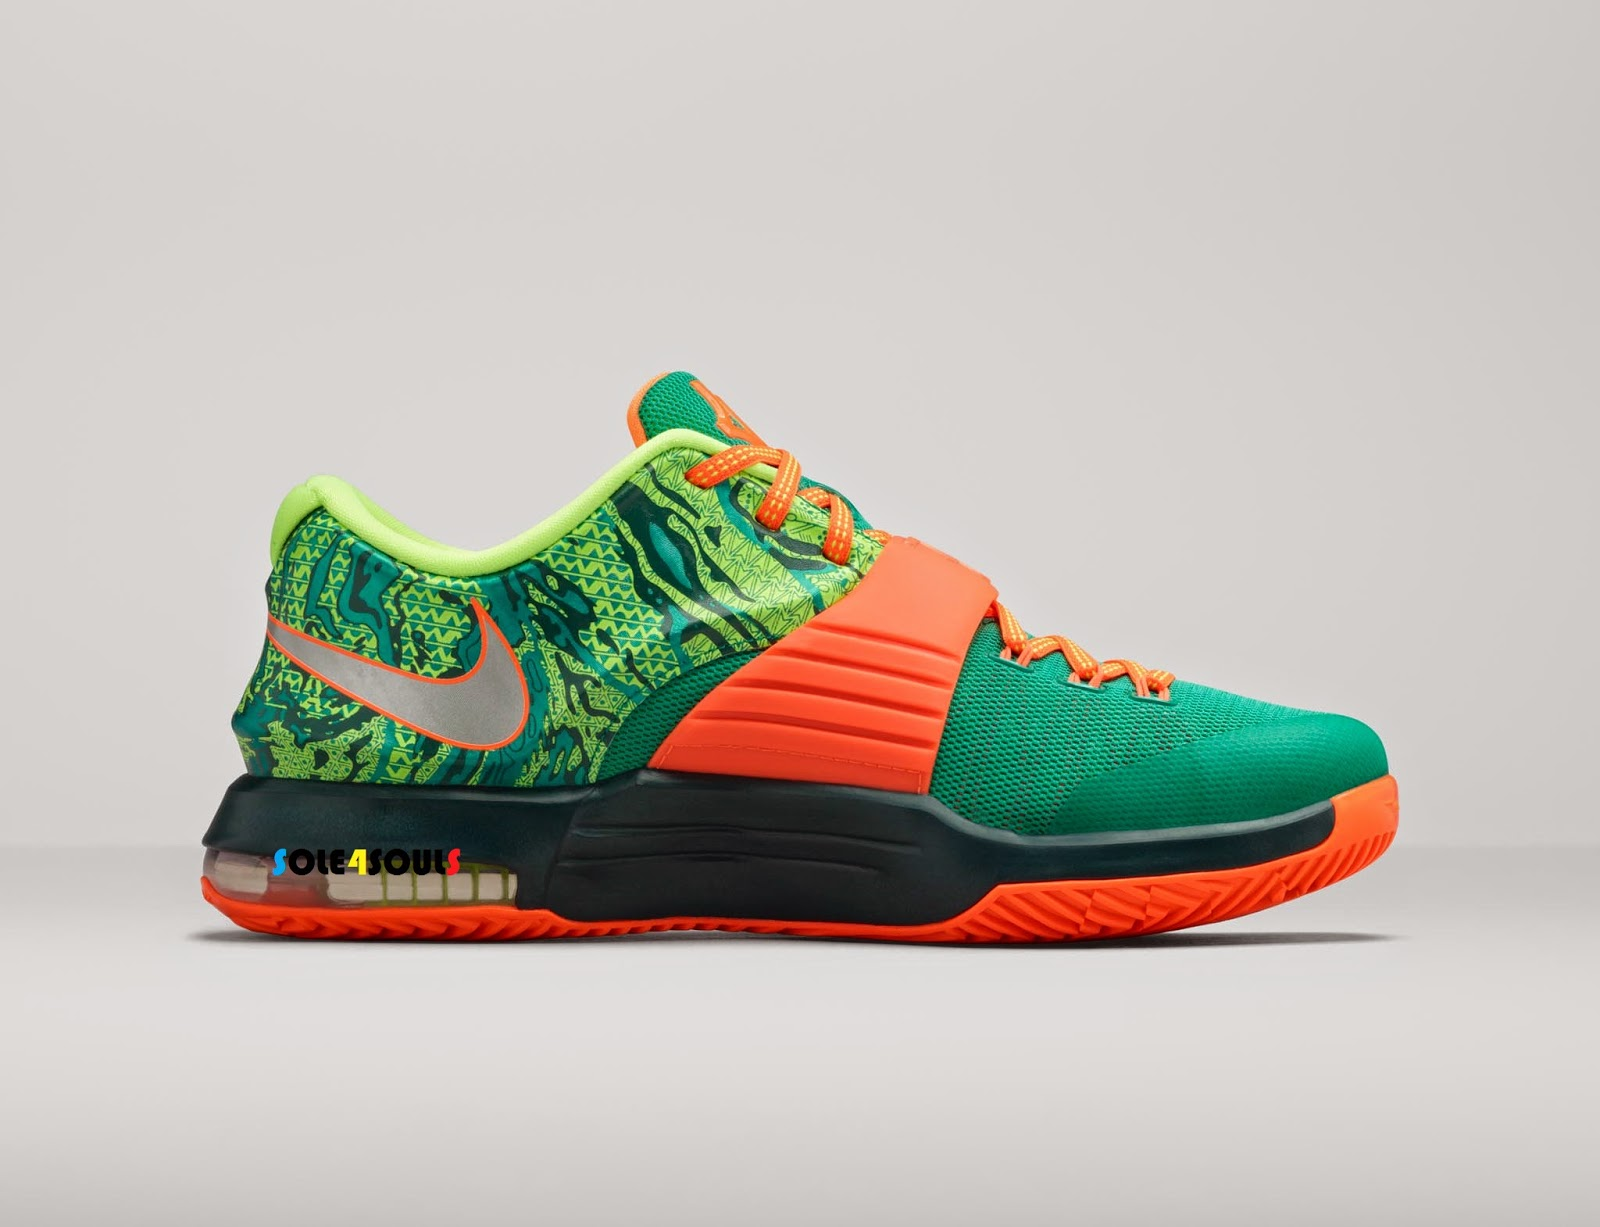 07ace3c4c68f ... clearance nike kd 7 ep weatherman. for sale pre order size us  88.599.51010.51112